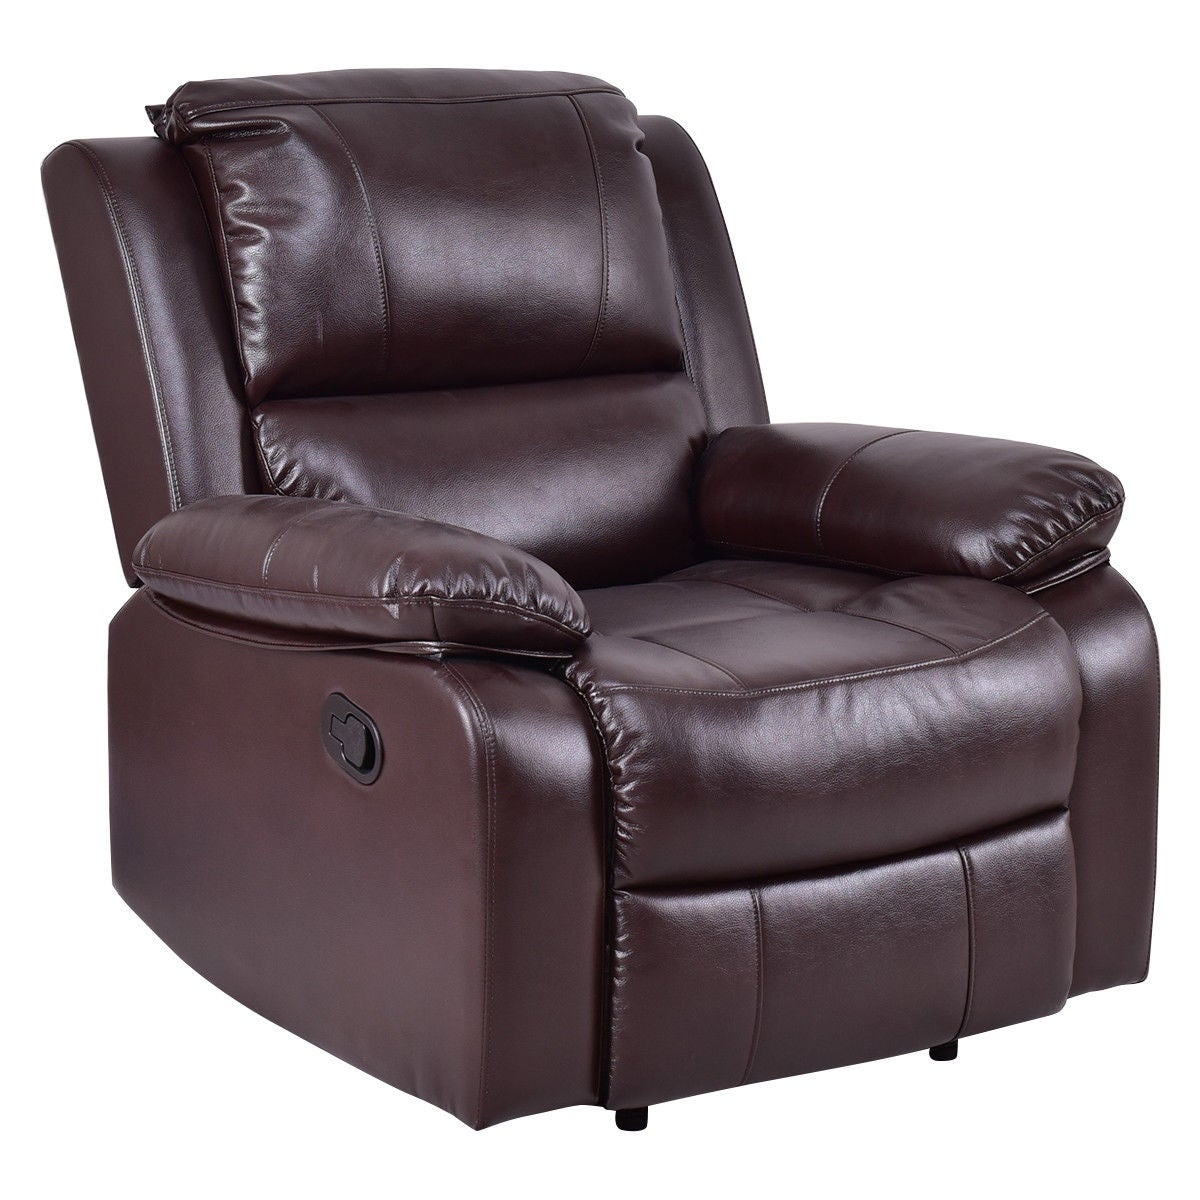 Superb Leather Lounge Chairs Recliners #10 - Costway Manual Recliner Sofa Lounge Chair PU Leather Home Theater Padded  Reclining Brown - Free Shipping Today - Overstock - 24841873